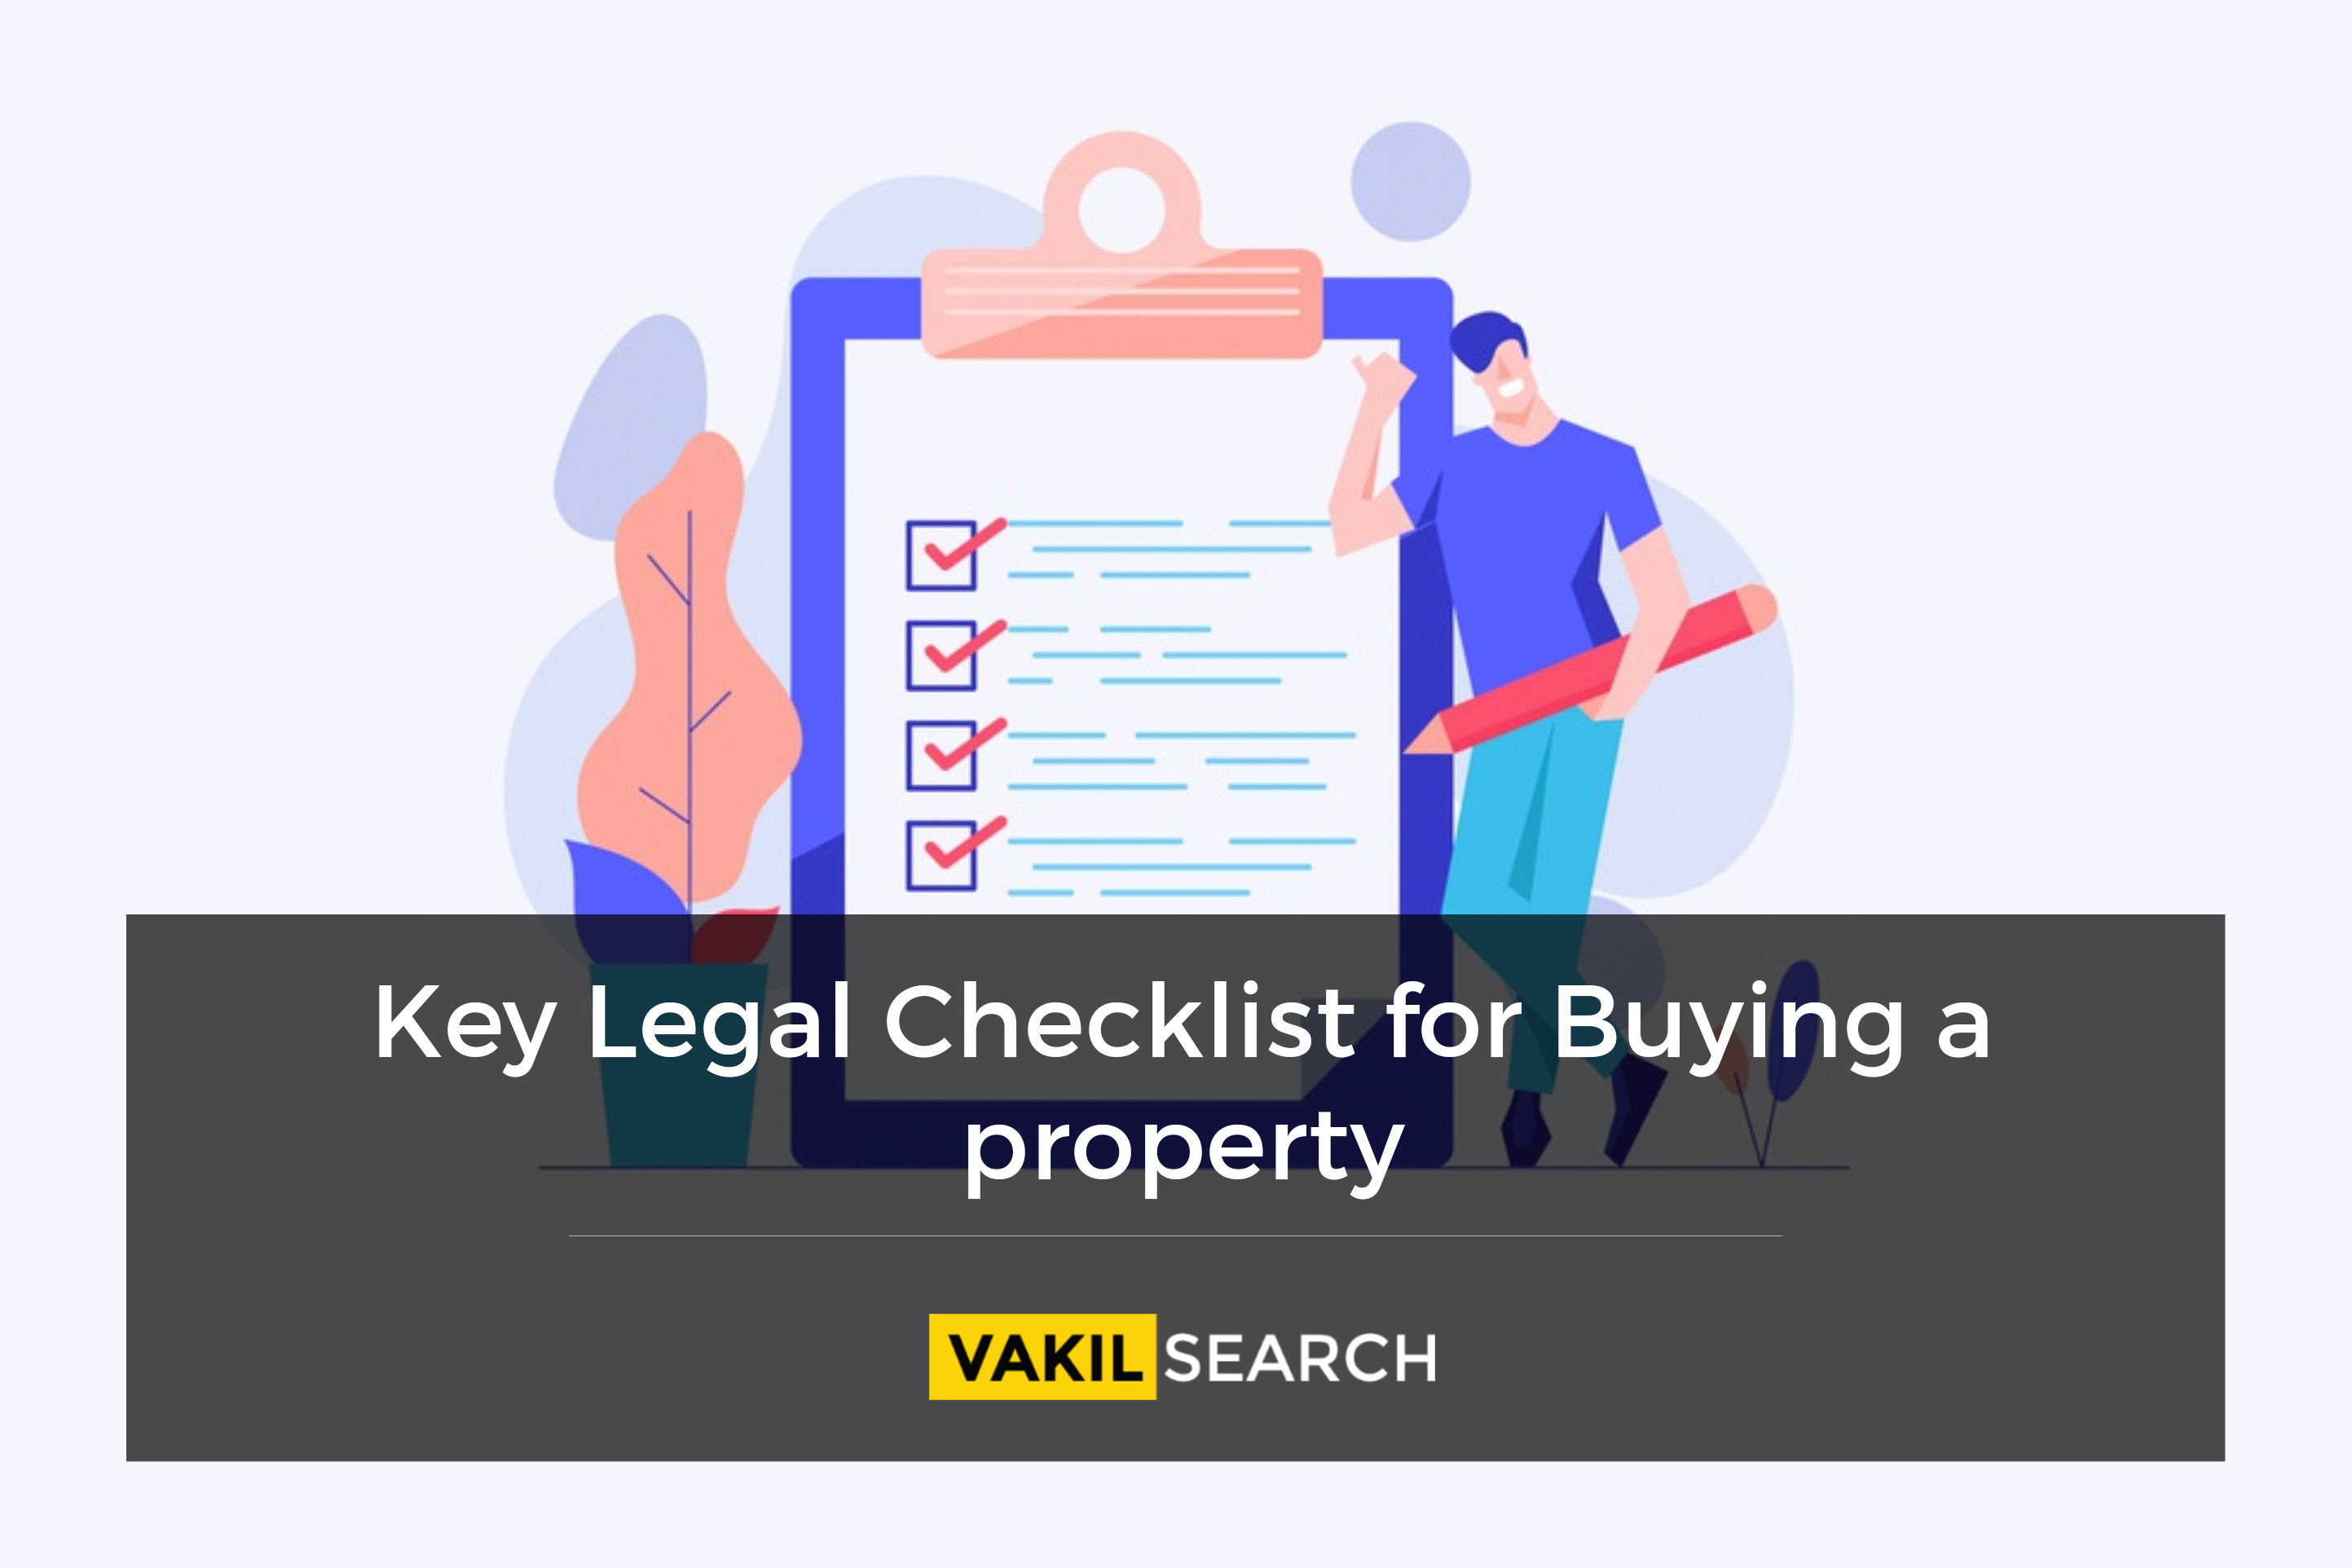 Key Checklist for Buying a Property